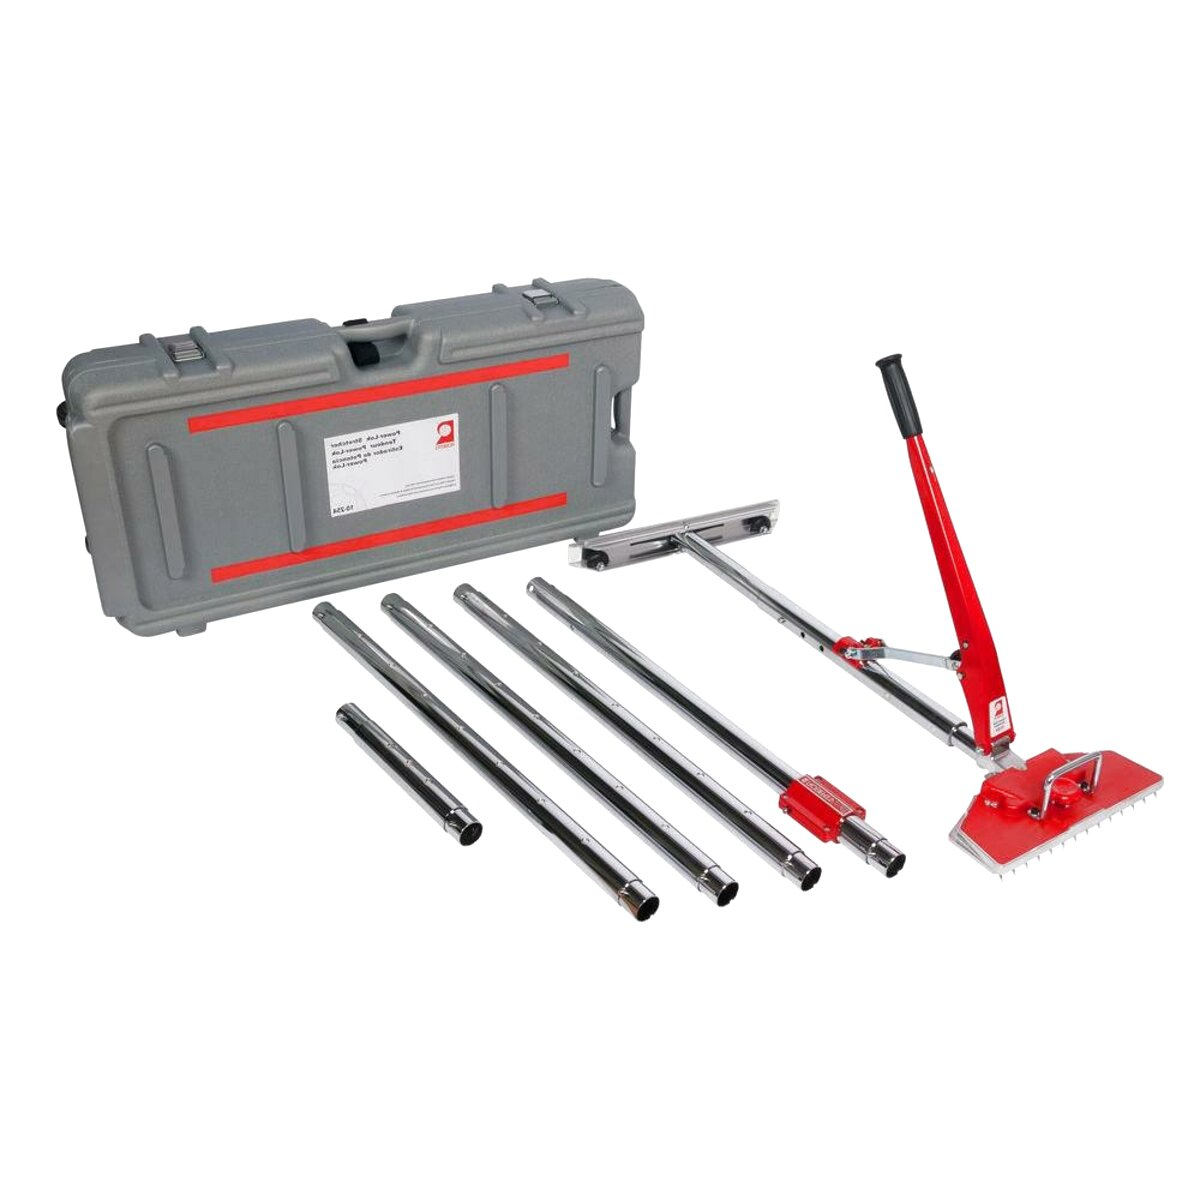 Carpet Stretcher For Sale In Uk View 67 Bargains